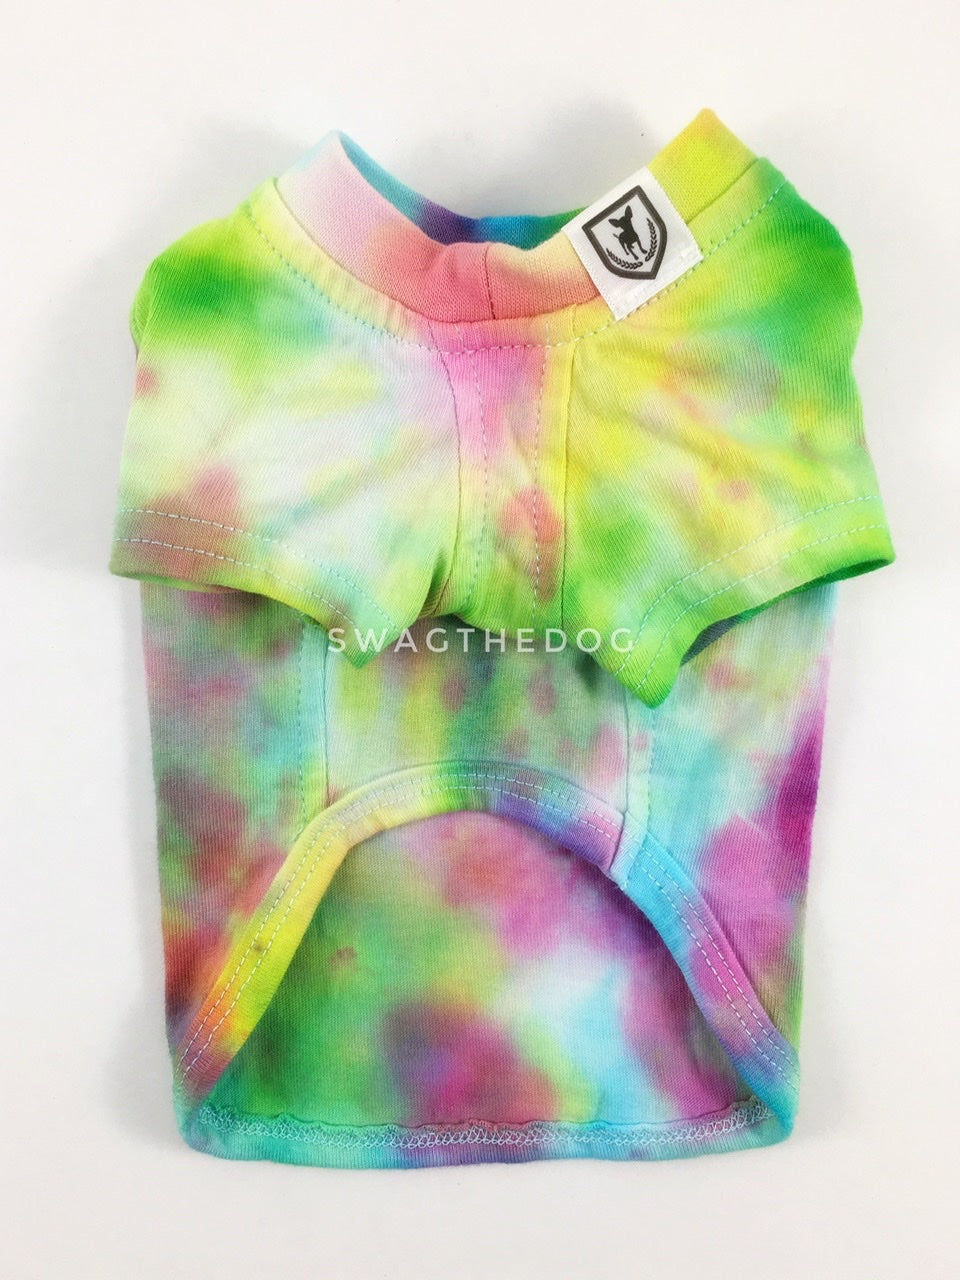 Swagadelic Hipster Tie Dye Tee - Product front view. The hand tie-dyed tee with Pink, Yellow and Sky Blue